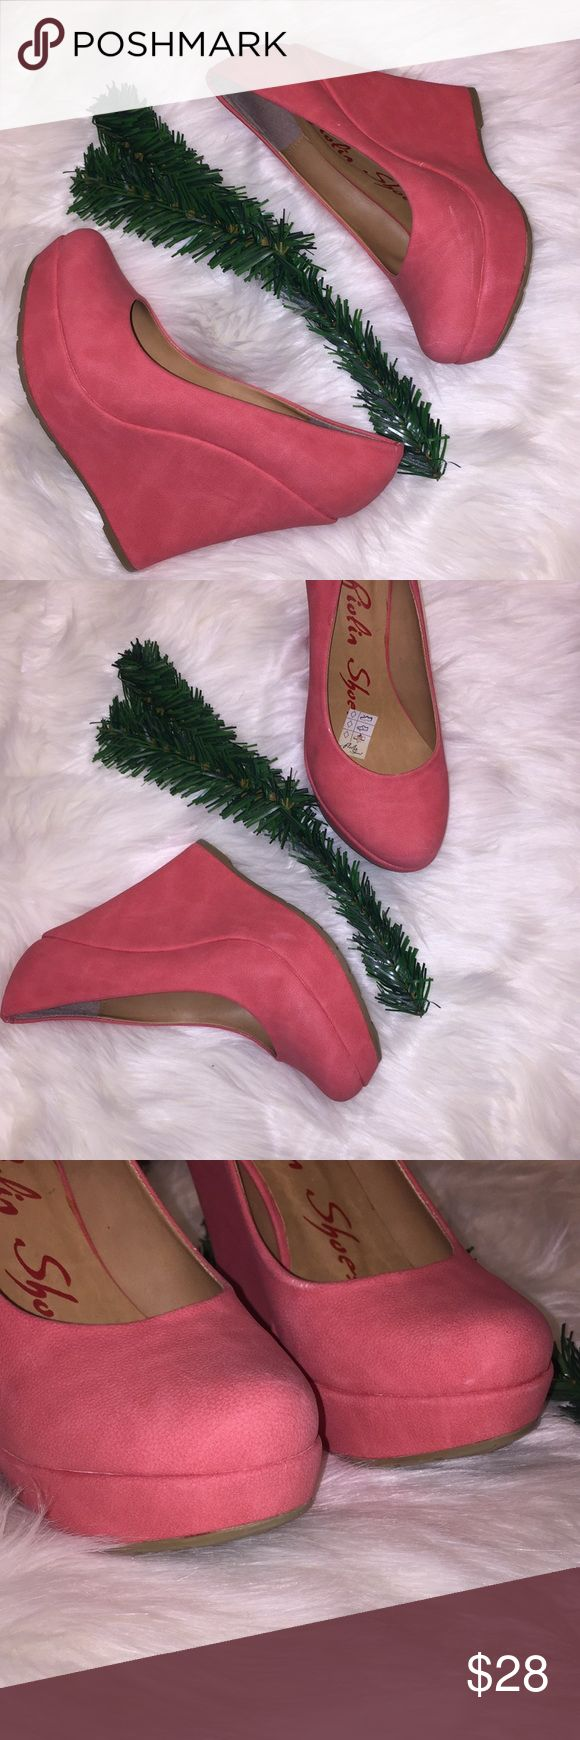 💕Coral 💕Wedge Platform Heels Size 7/37 💕Coral 💕Wedge Platform Heels Size 7/37  Some small white markings are in the shoe but aren't to noticeable. See pics. piolin Shoes Wedges